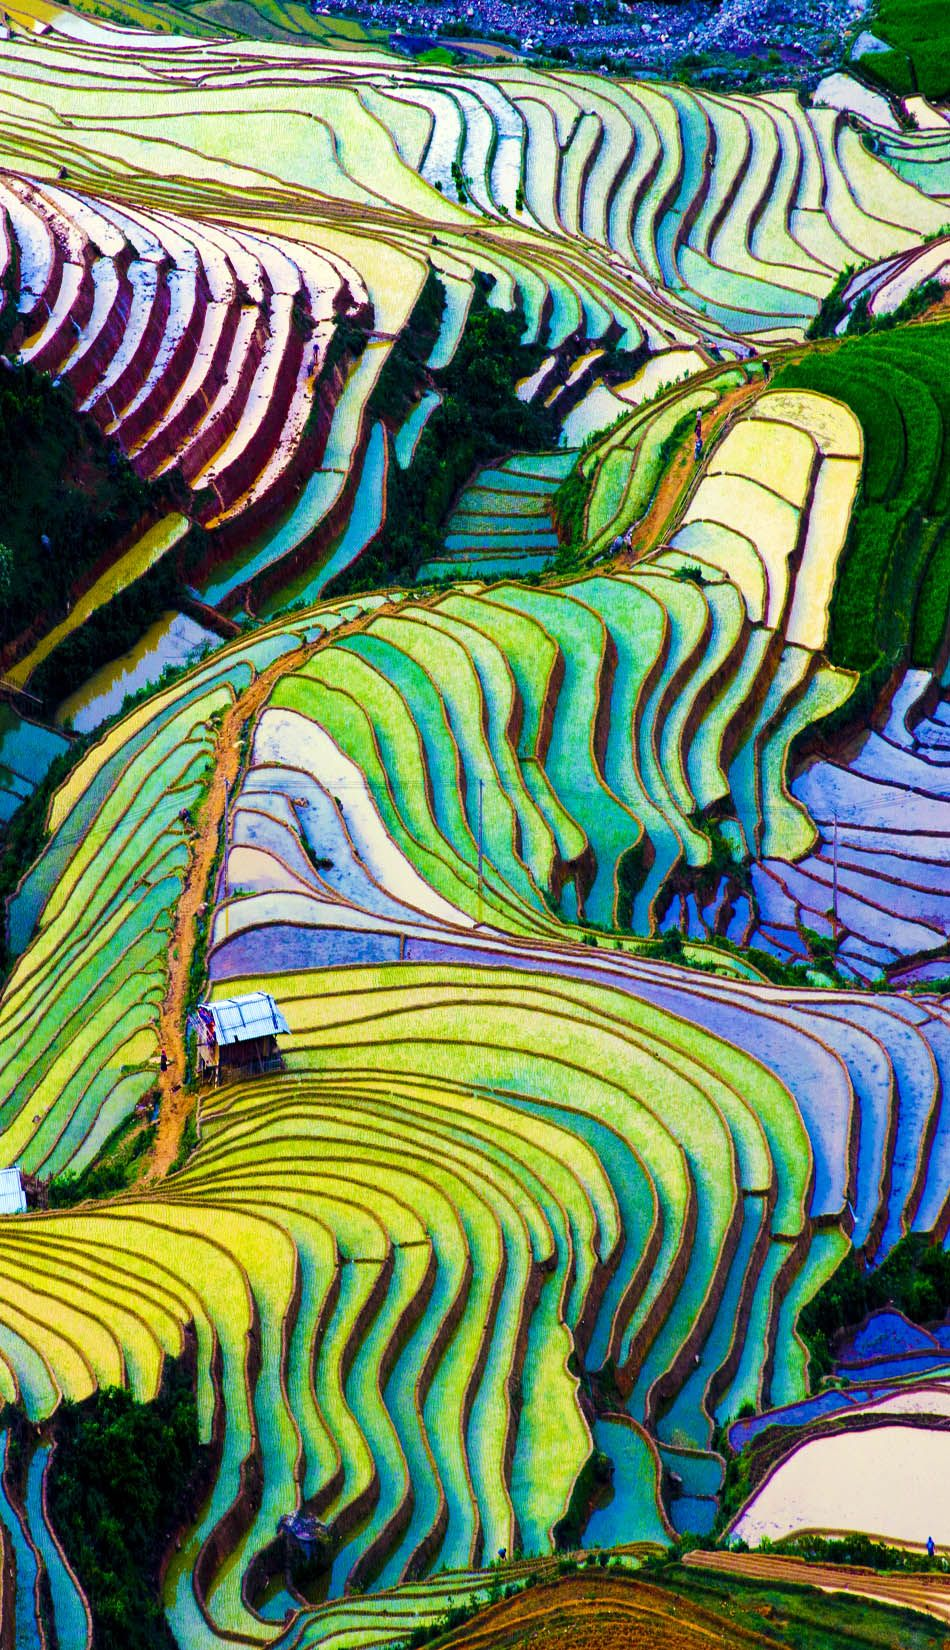 17 Unbelivably Photos Of Rice Fields  Stunning No  #15